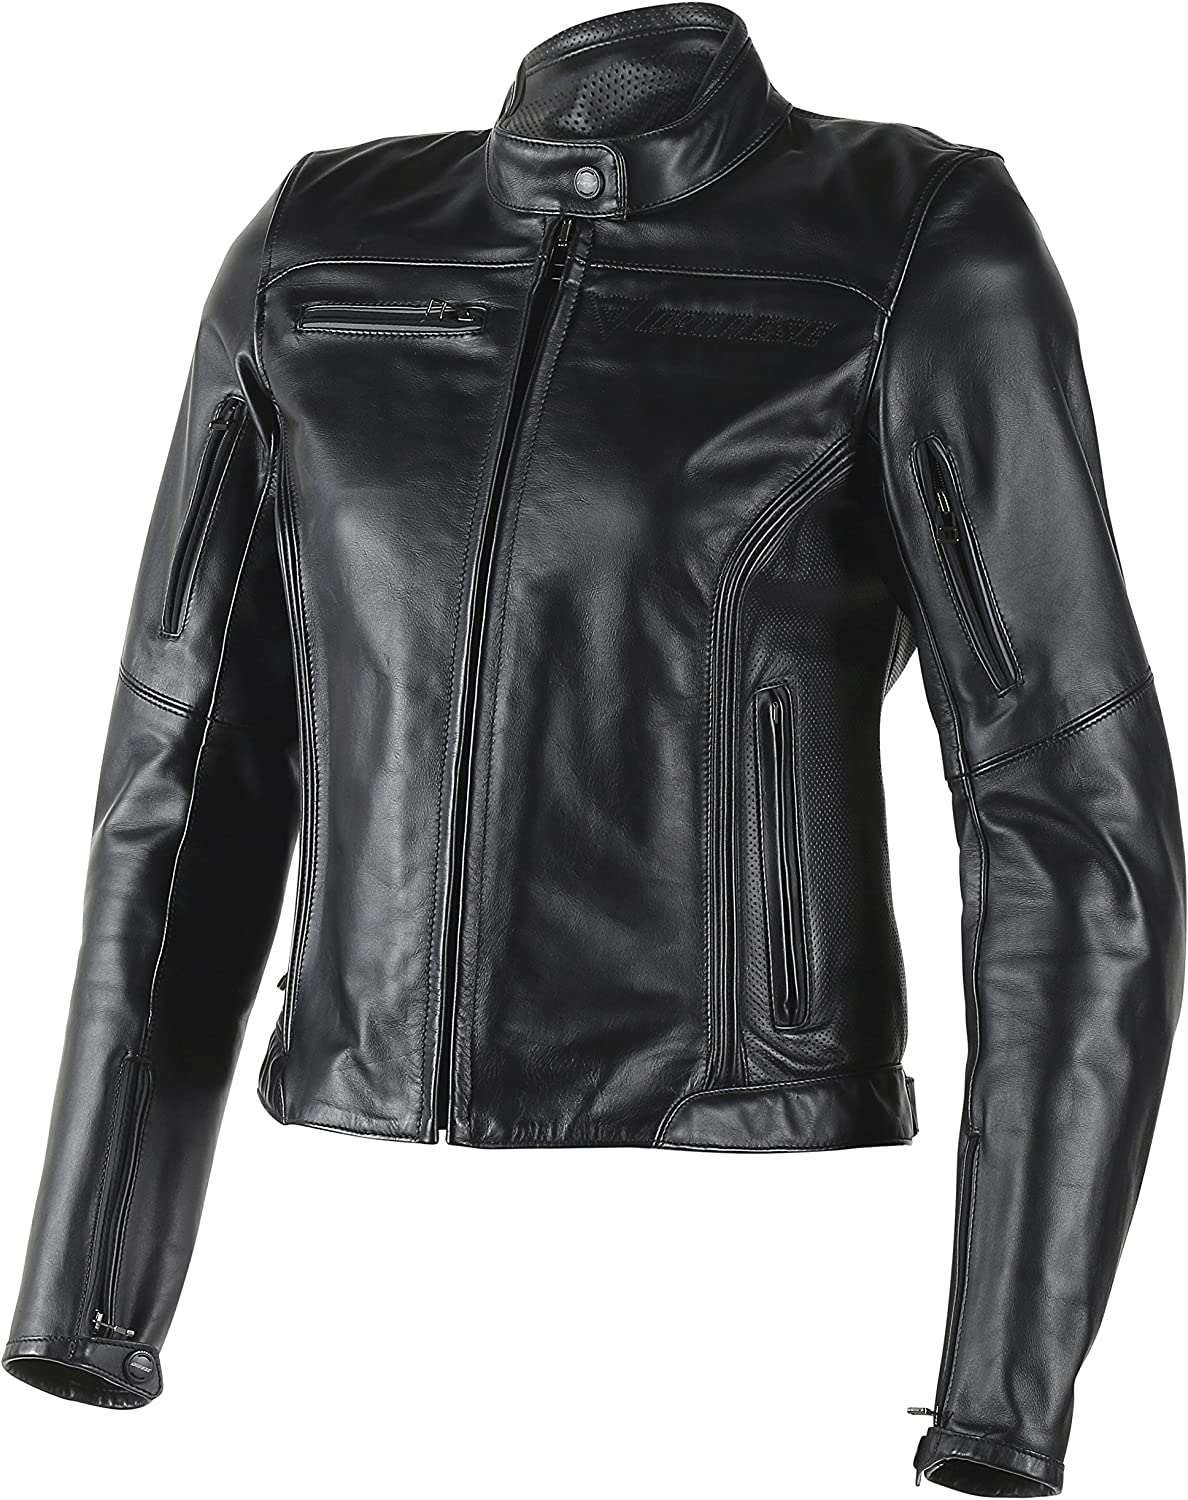 Mejor Chaqueta Vintage Dainese Mujer